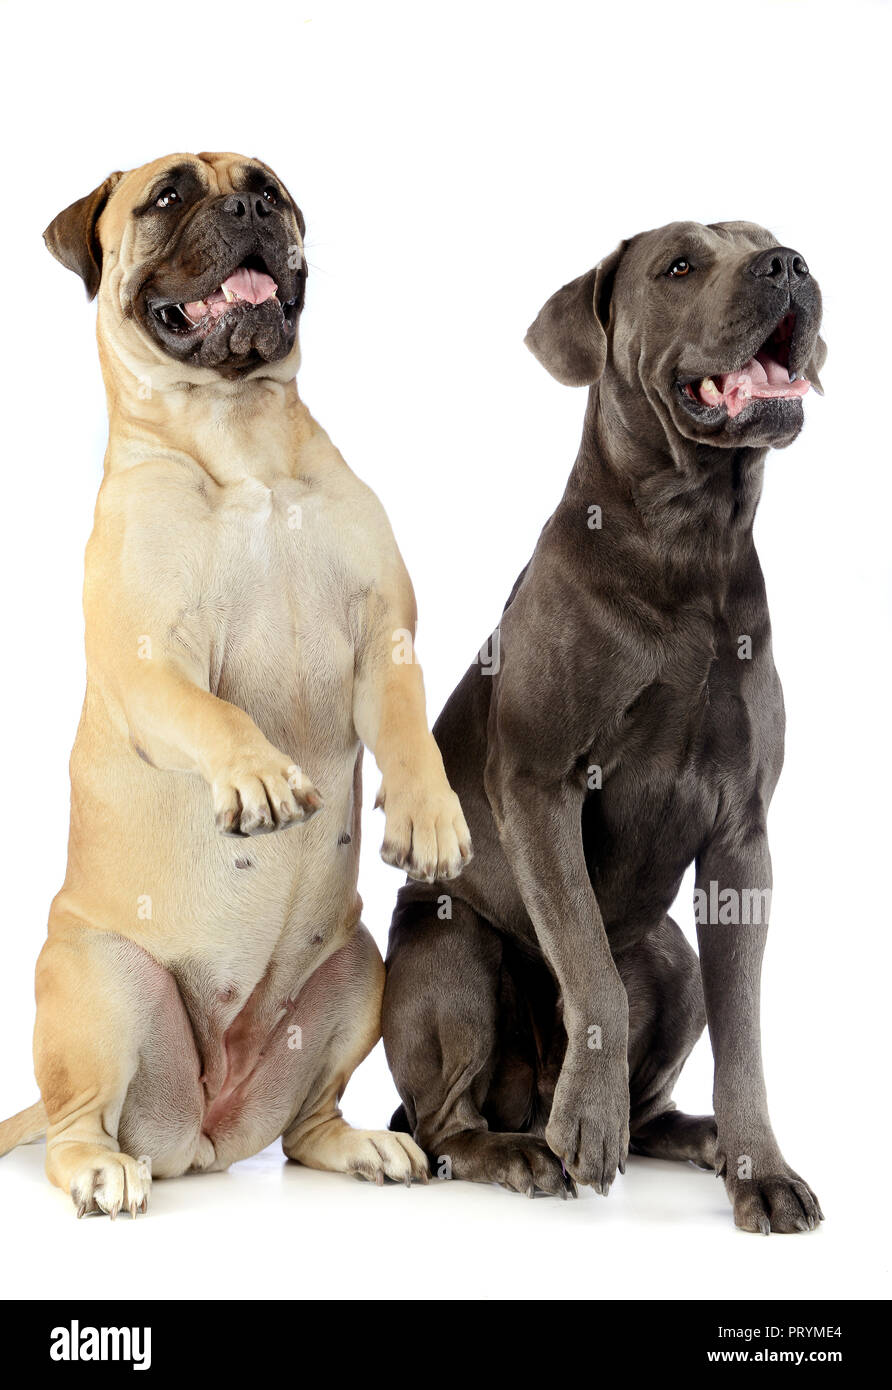 Bull Mastiff And Puppy Cane Corso Sitting And Standing In A White